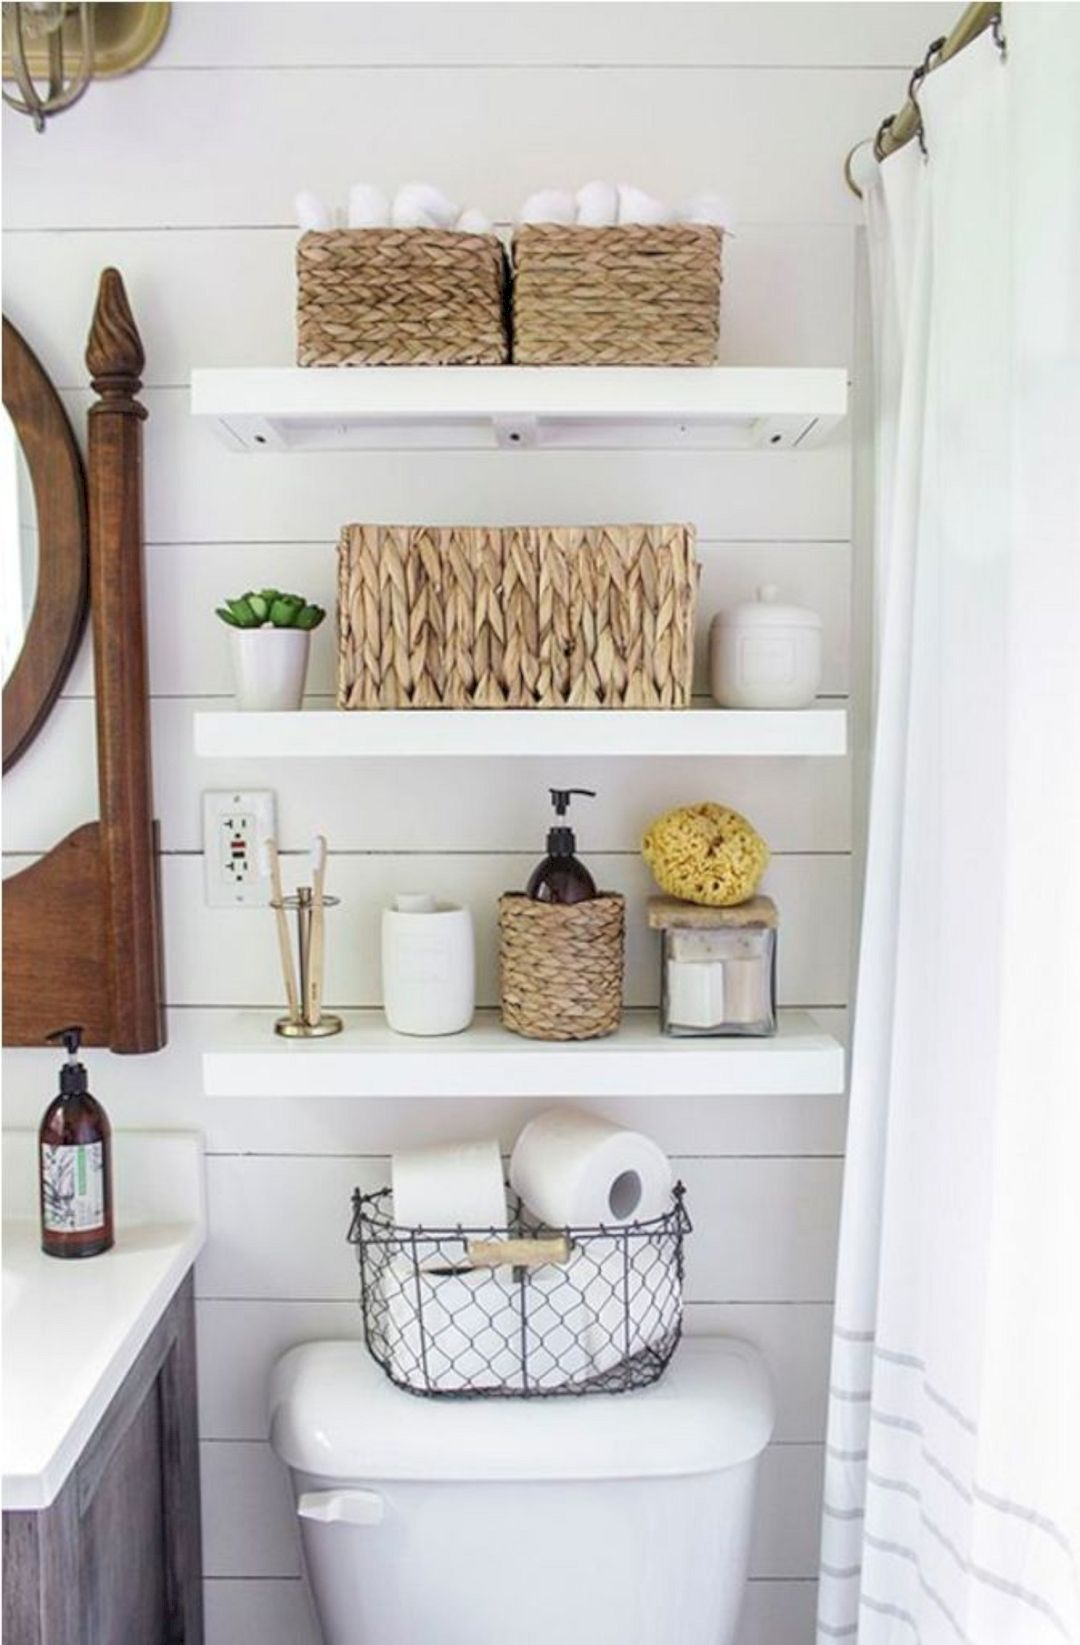 17 Awesome Small Bathroom Decorating Ideas